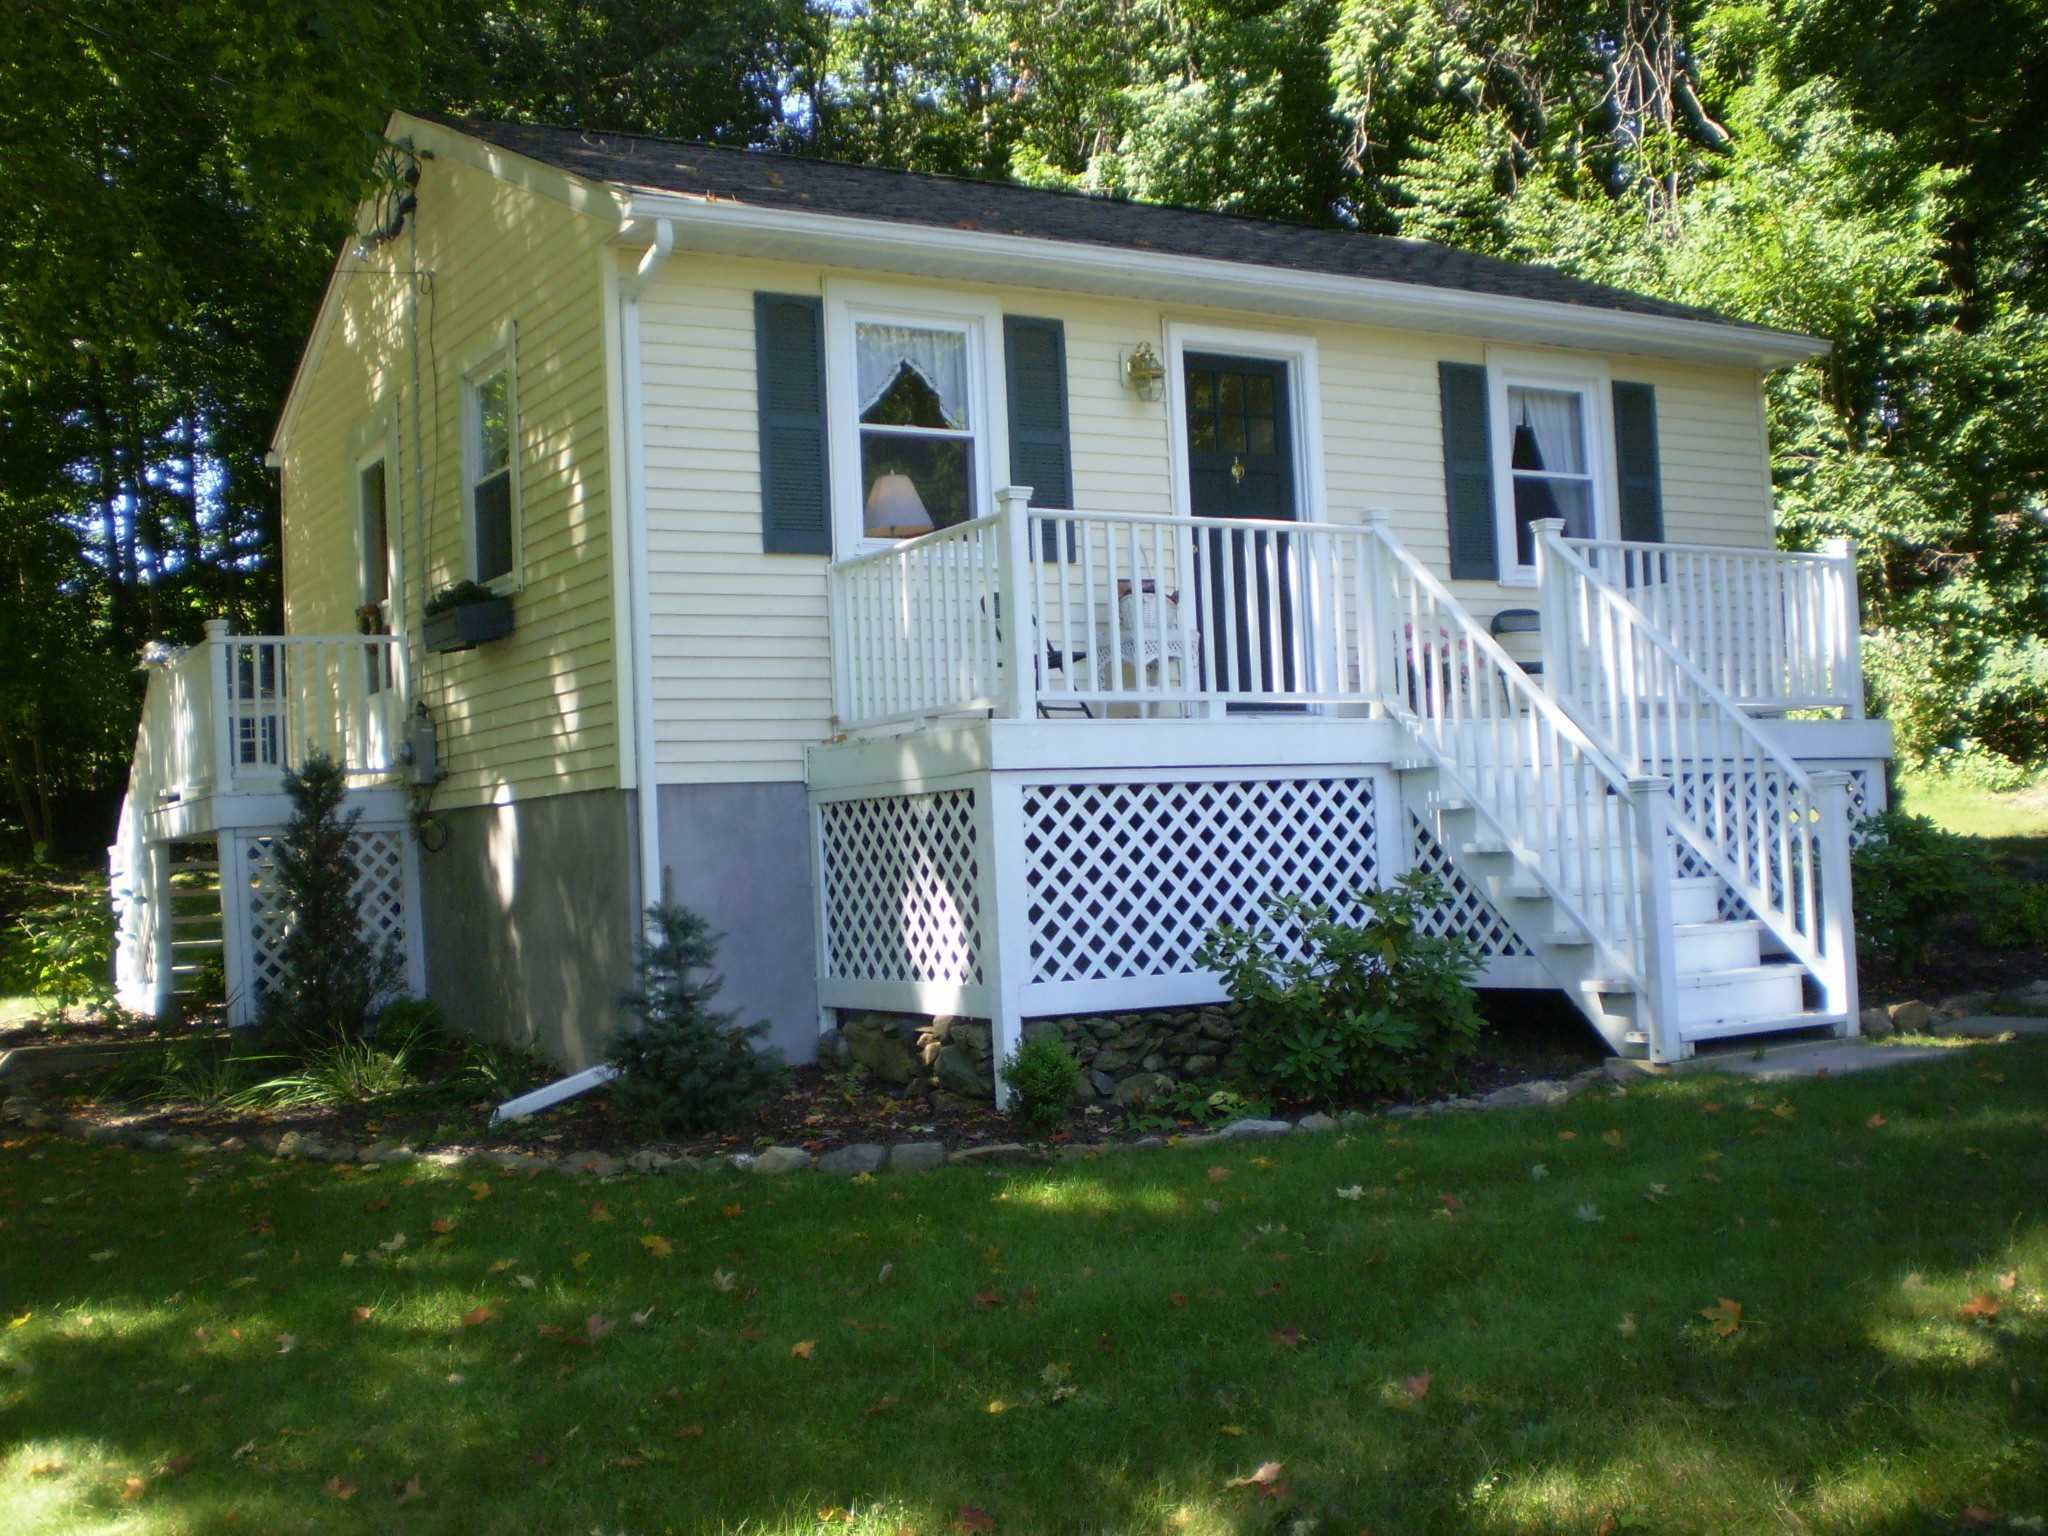 Single Family Home for Sale at 22 LAKEVIEW Drive 22 LAKEVIEW Drive Dover Plains, New York 12564 United States